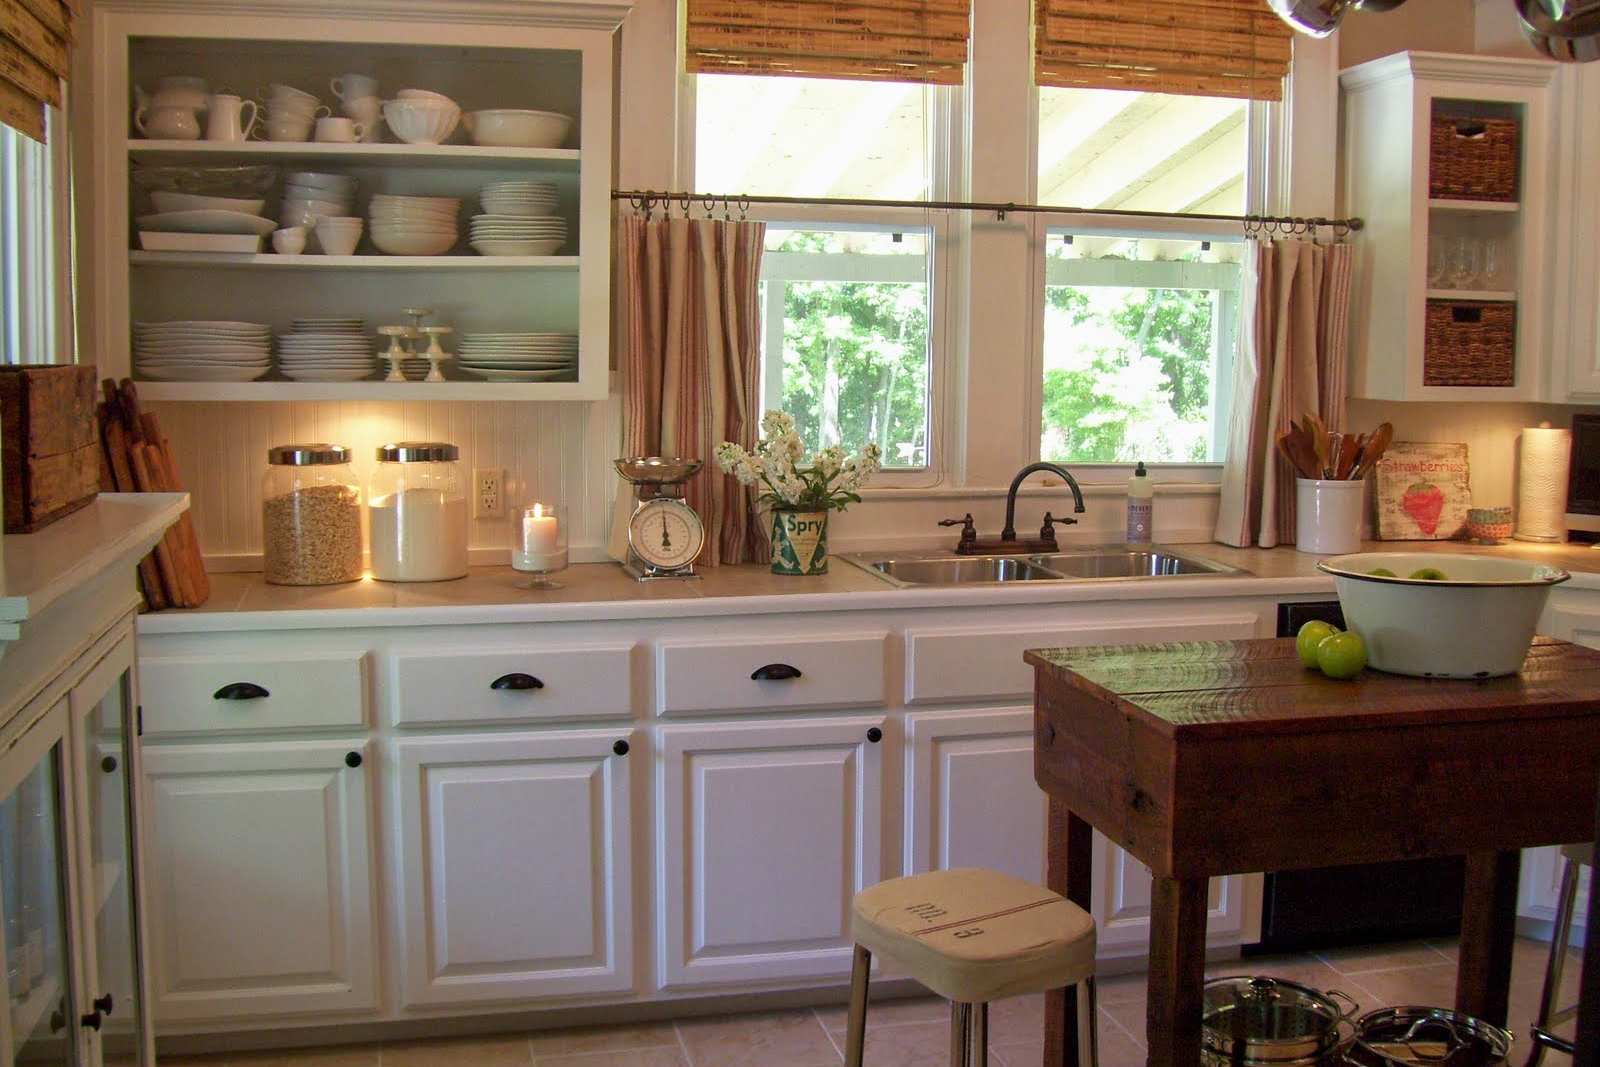 Design A Kitchen Remodel quotes House Designer kitchen